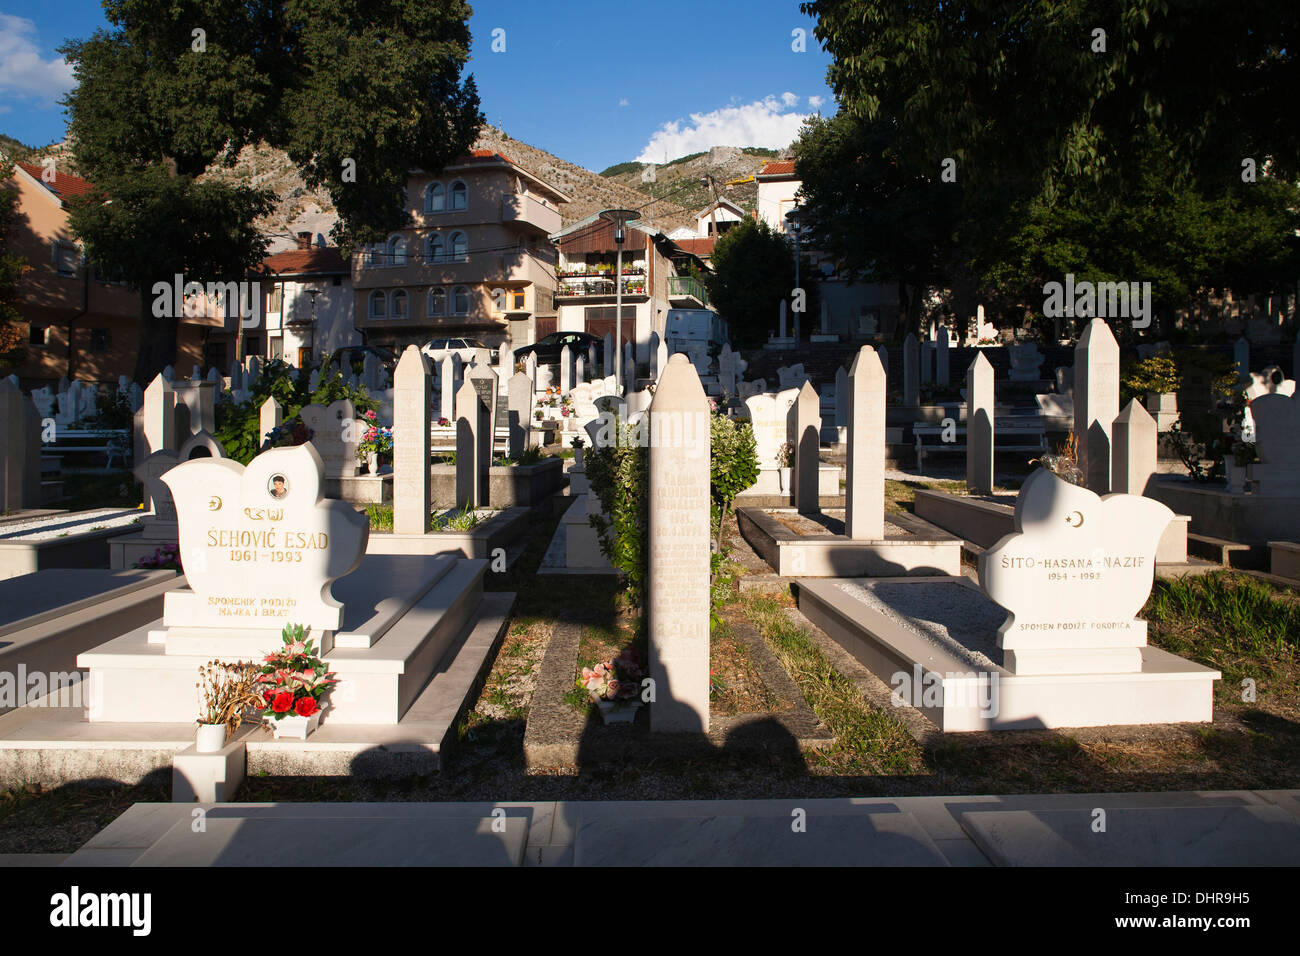 muslim cemetery, old town, east side, mostar, bosnia and herzegovina, europe Stock Photo